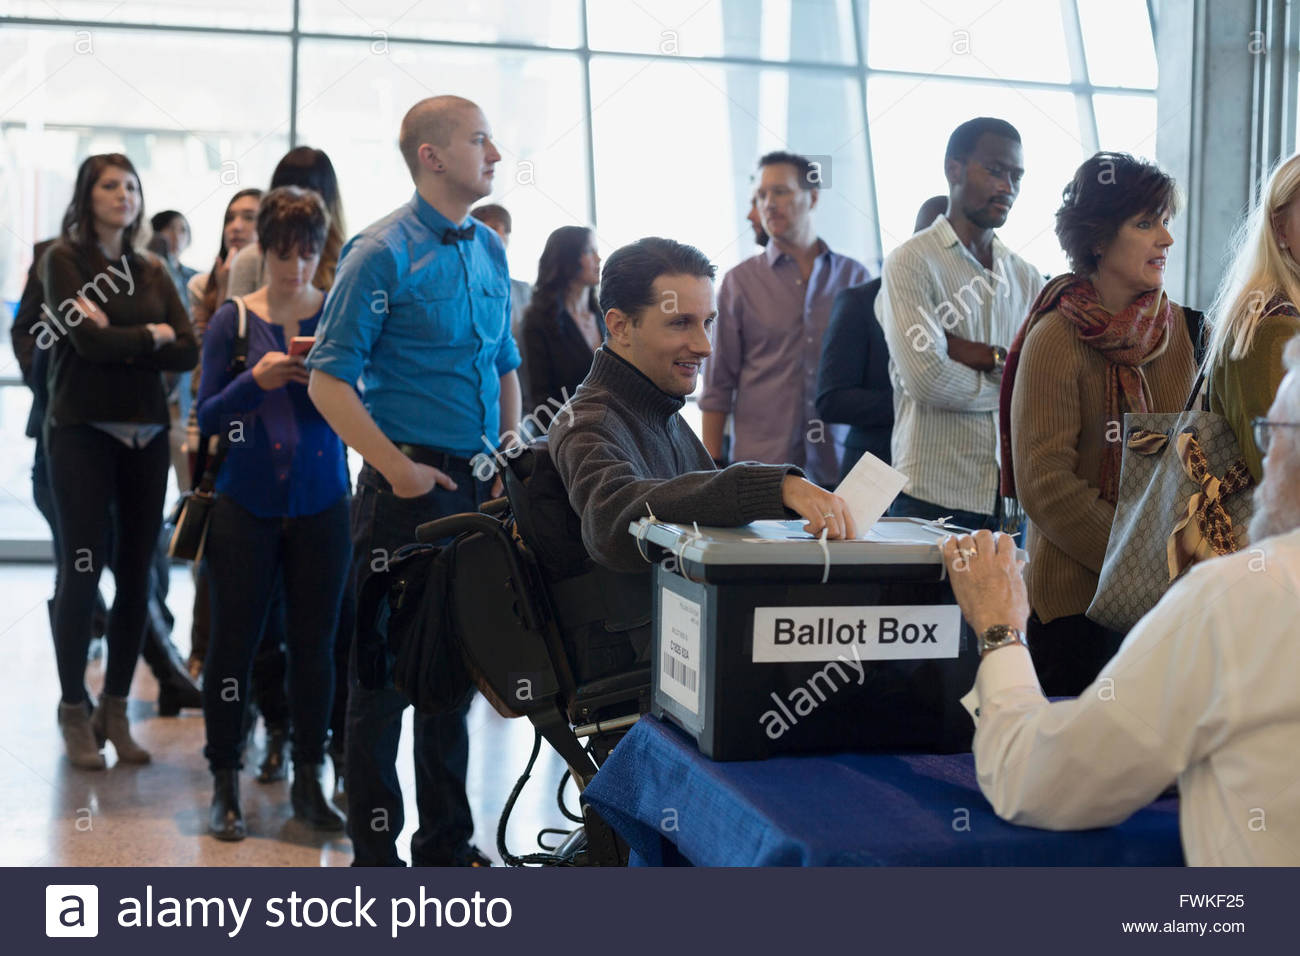 Voters waiting in line at polling place - Stock Image